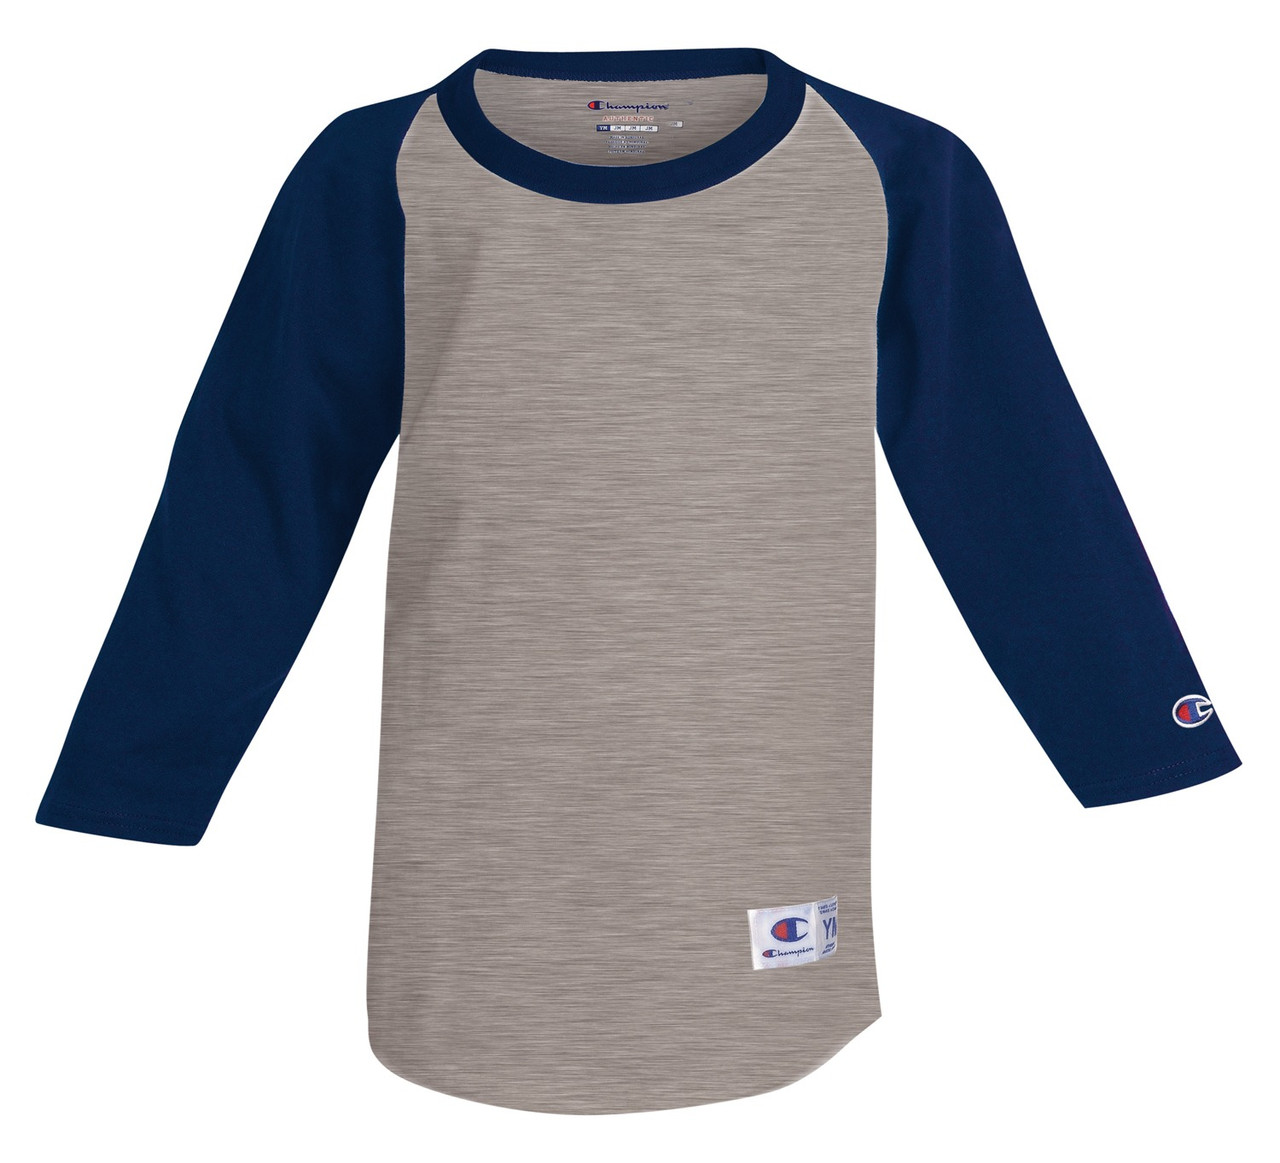 13dce0dd Oxford Gray/Navy Front Champion T13Y Youth Raglan Baseball Tee |  Athleticwear.ca